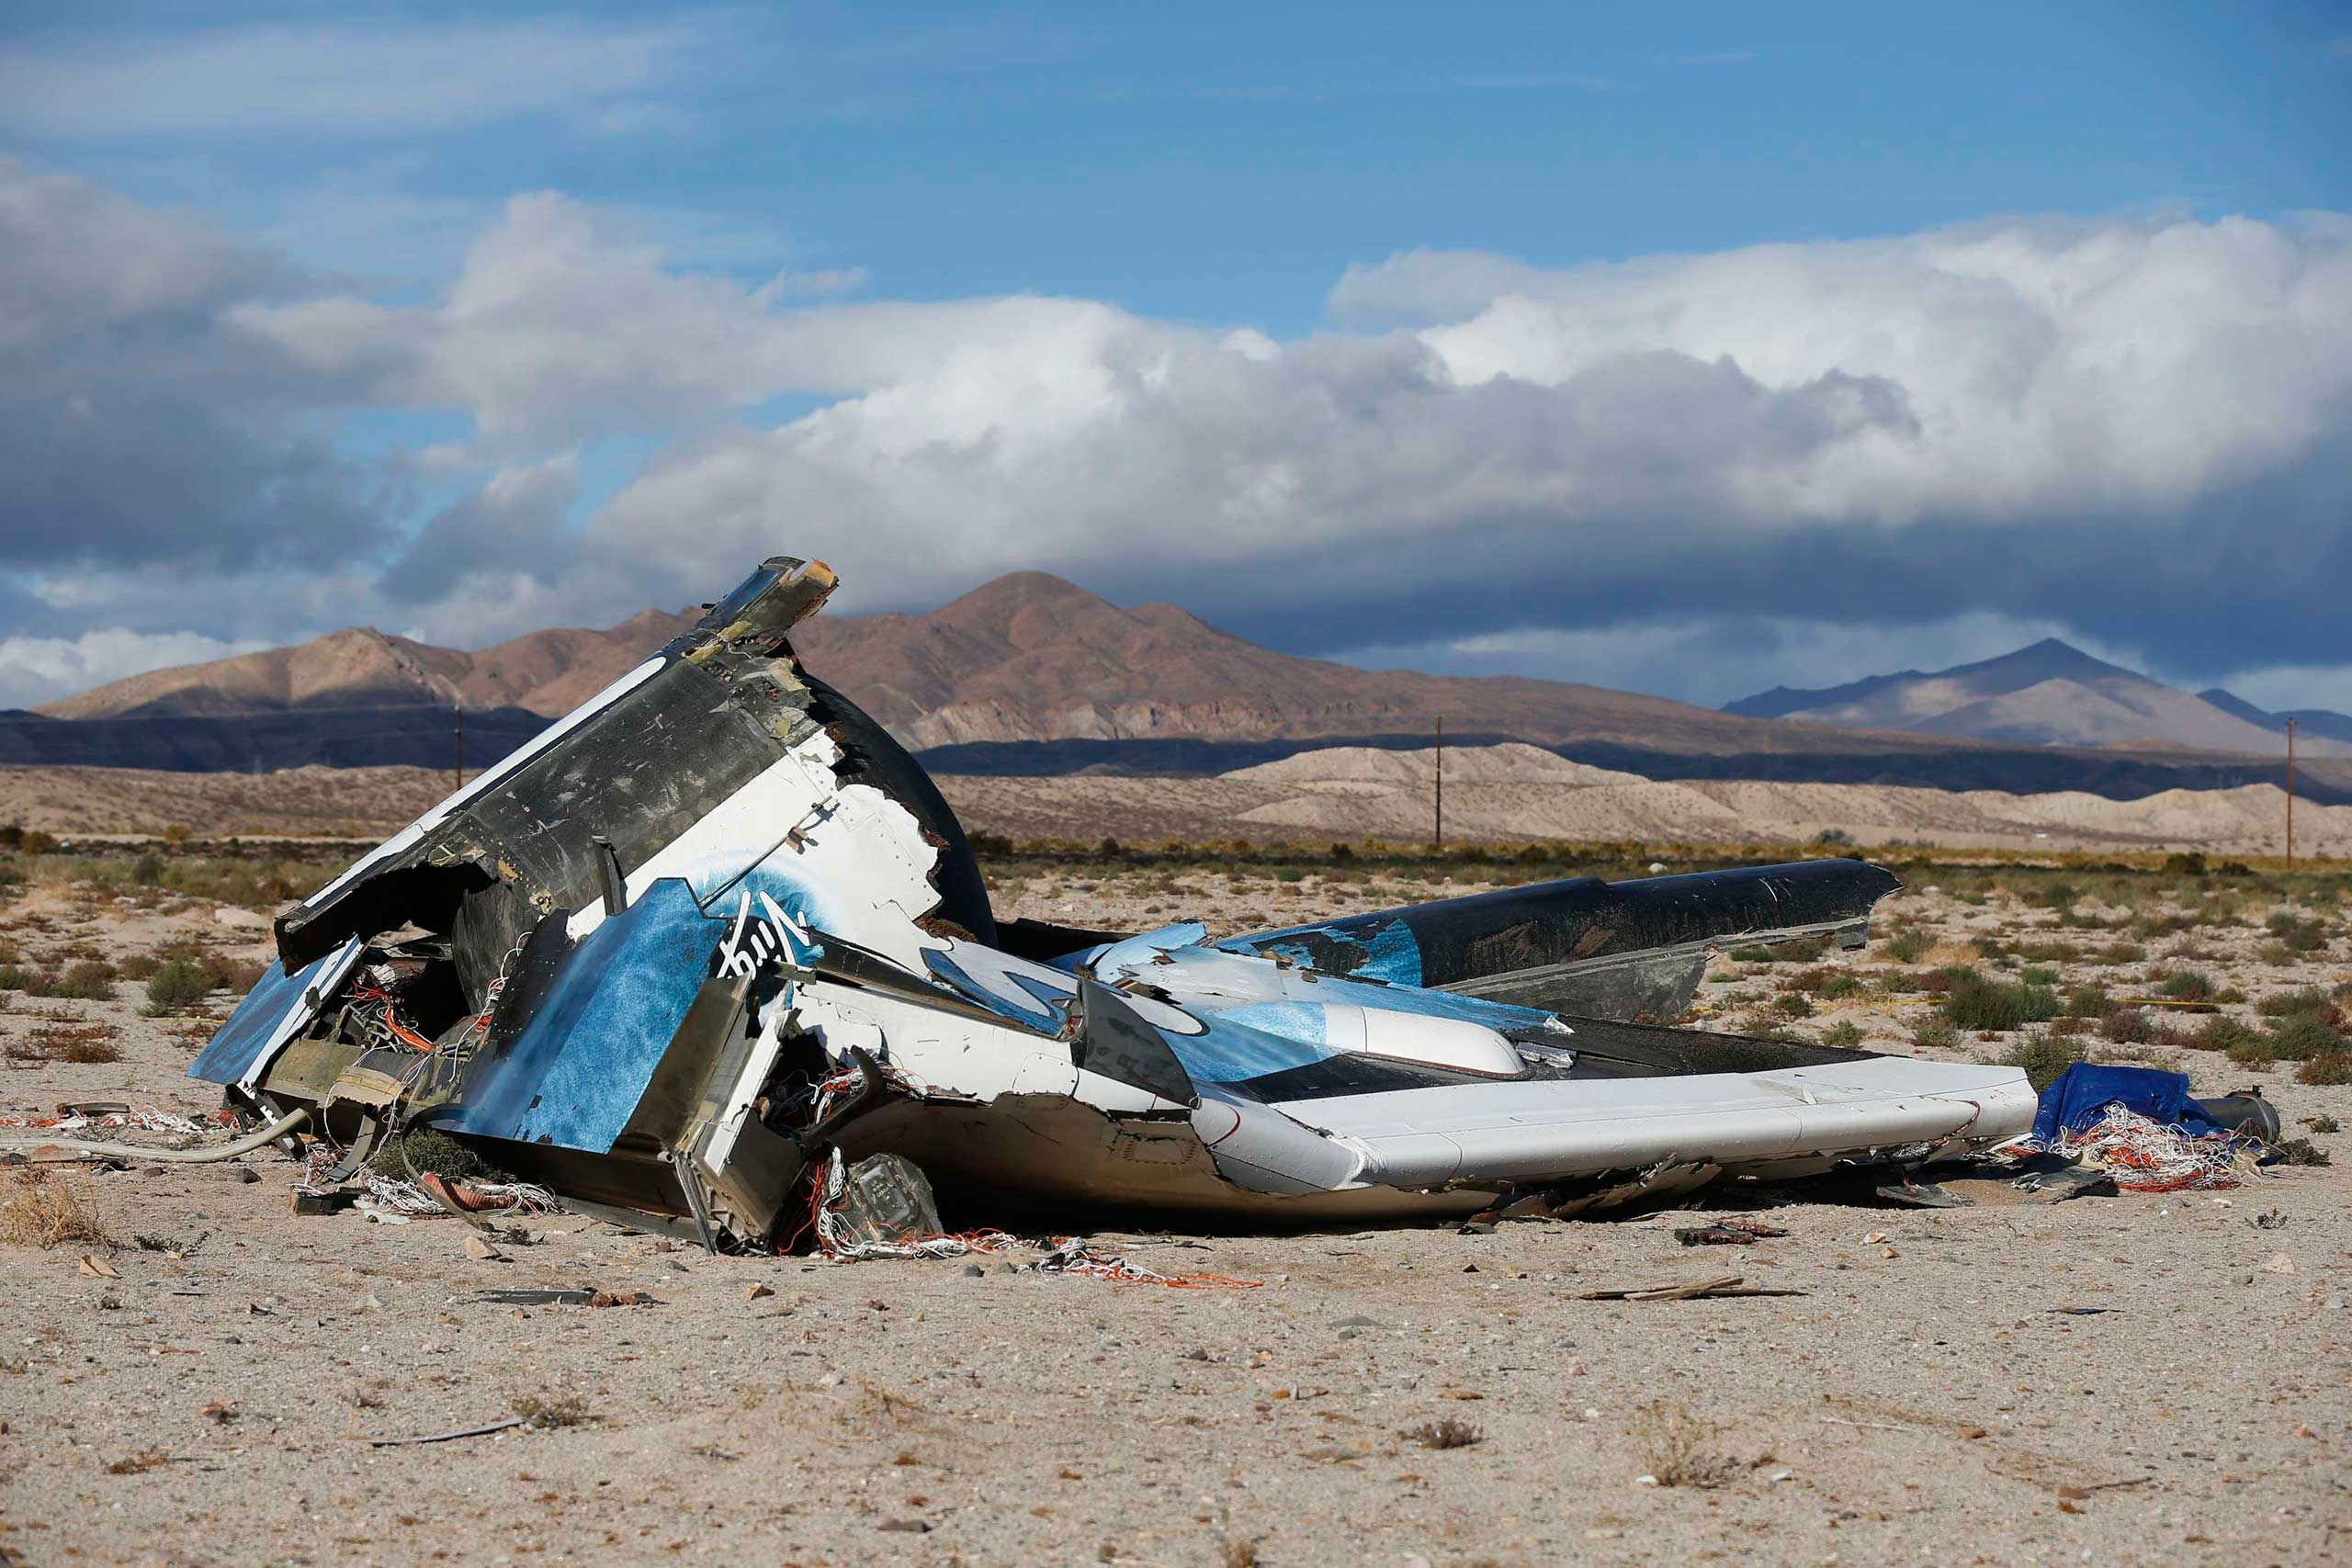 Nov. 1, 2014. A piece of debris is seen near the crash site of Virgin Galactic's SpaceShipTwo near Cantil, Calif. Virgin Galactic founder Richard Branson said on Saturday he was working with U.S. authorities to determine what caused a passenger spaceship being developed by his space tourism company to crash in California, killing one pilot and injuring the other.